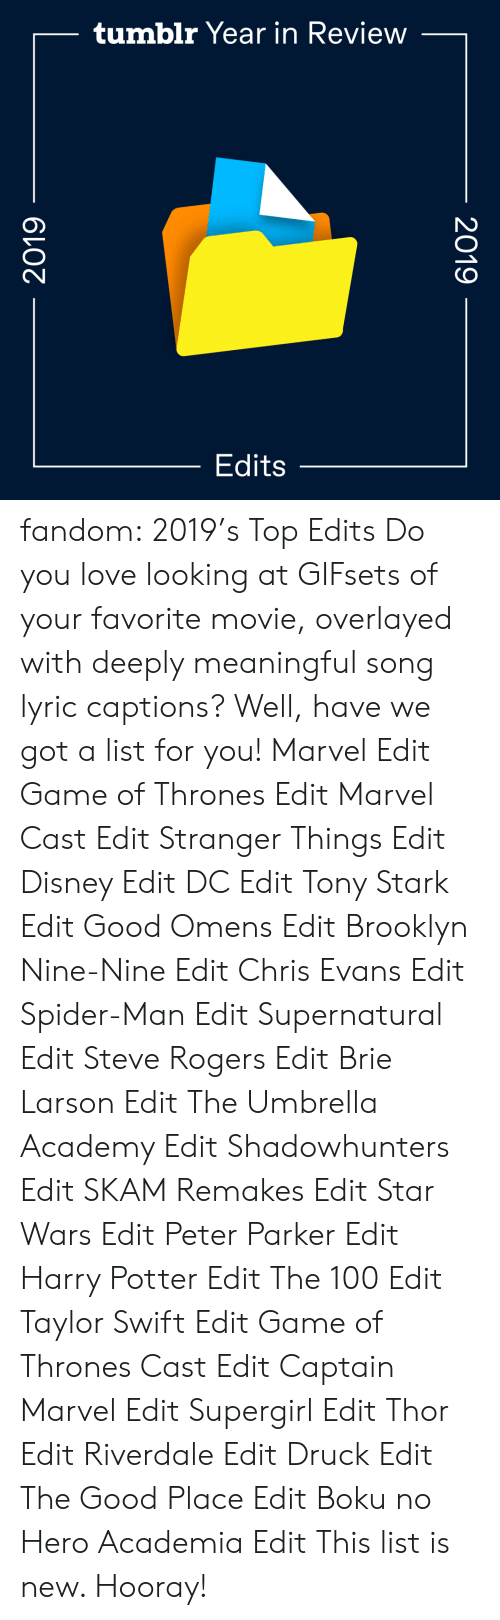 Nine Nine: tumblr Year in Review  Edits  2019  2019 fandom:  2019's Top Edits  Do you love looking at GIFsets of your favorite movie, overlayed with deeply meaningful song lyric captions? Well, have we got a list for you!  Marvel Edit  Game of Thrones Edit  Marvel Cast Edit  Stranger Things Edit  Disney Edit  DC Edit  Tony Stark Edit  Good Omens Edit  Brooklyn Nine-Nine Edit  Chris Evans Edit  Spider-Man Edit  Supernatural Edit  Steve Rogers Edit  Brie Larson Edit  The Umbrella Academy Edit  Shadowhunters Edit  SKAM Remakes Edit  Star Wars Edit  Peter Parker Edit  Harry Potter Edit  The 100 Edit  Taylor Swift Edit  Game of Thrones Cast Edit  Captain Marvel Edit  Supergirl Edit  Thor Edit  Riverdale Edit  Druck Edit  The Good Place Edit  Boku no Hero Academia Edit This list is new. Hooray!